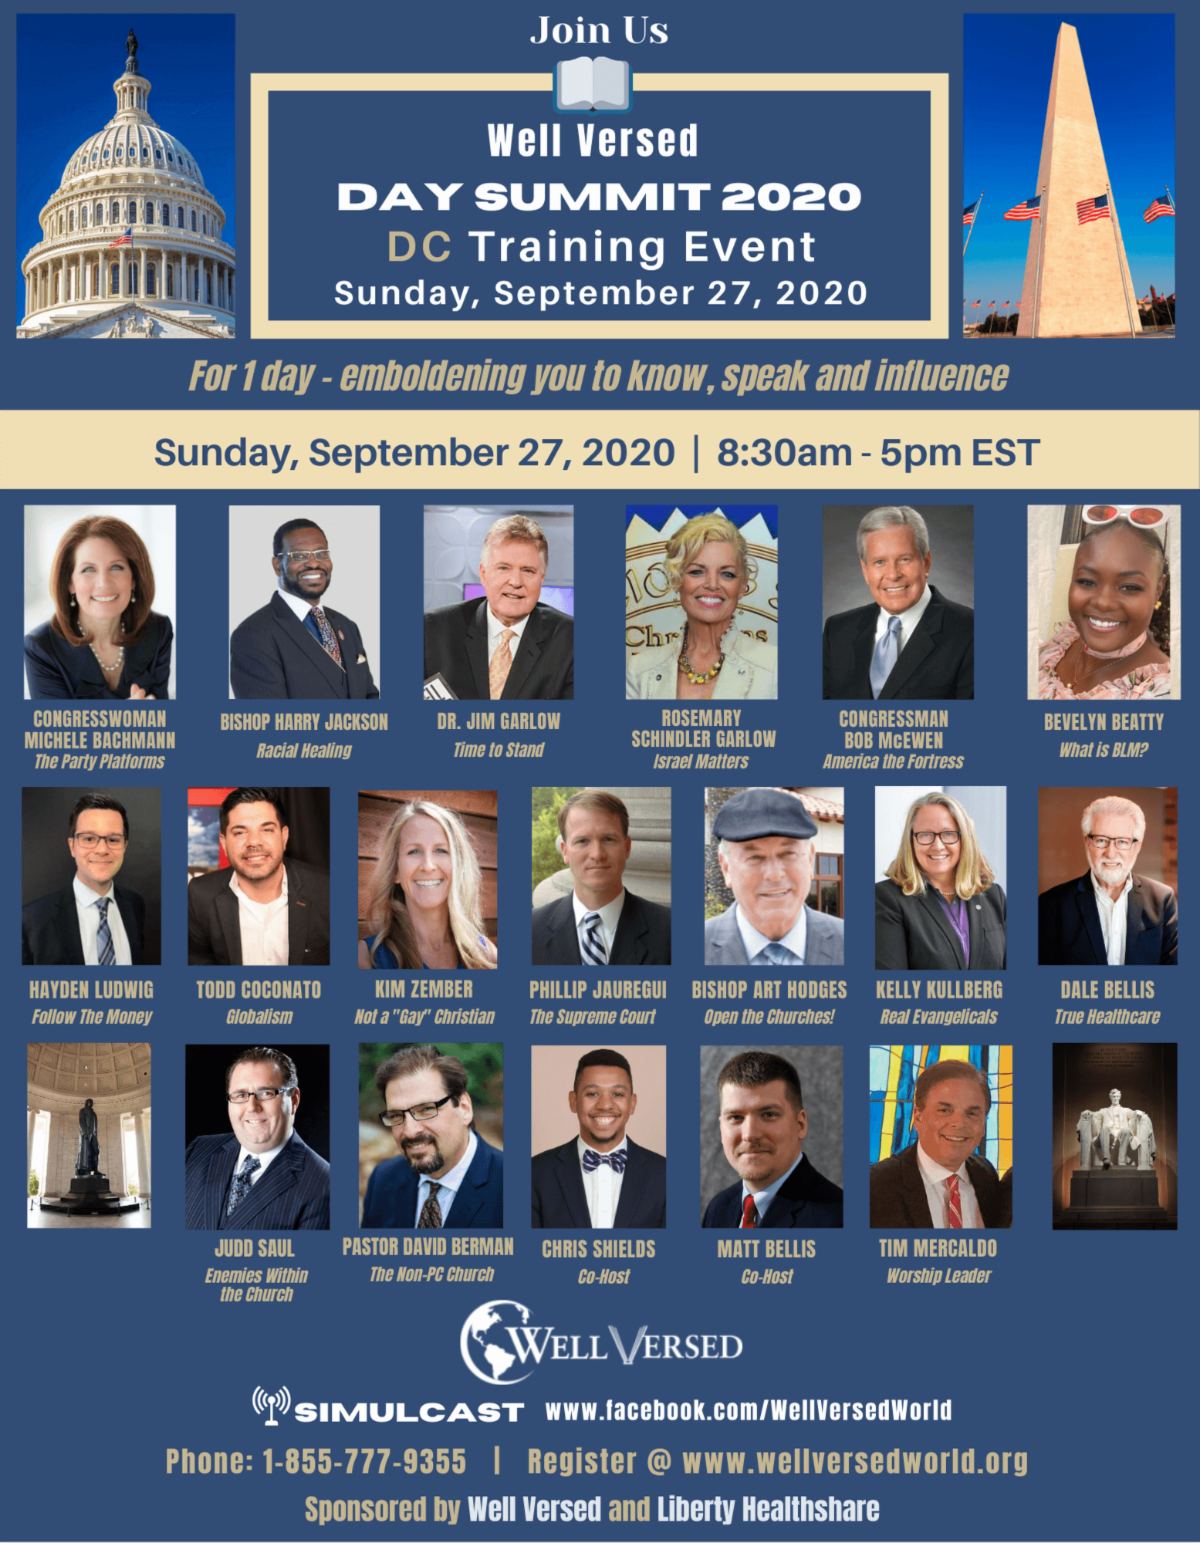 2020 Well Versed Day Summit Simulcast